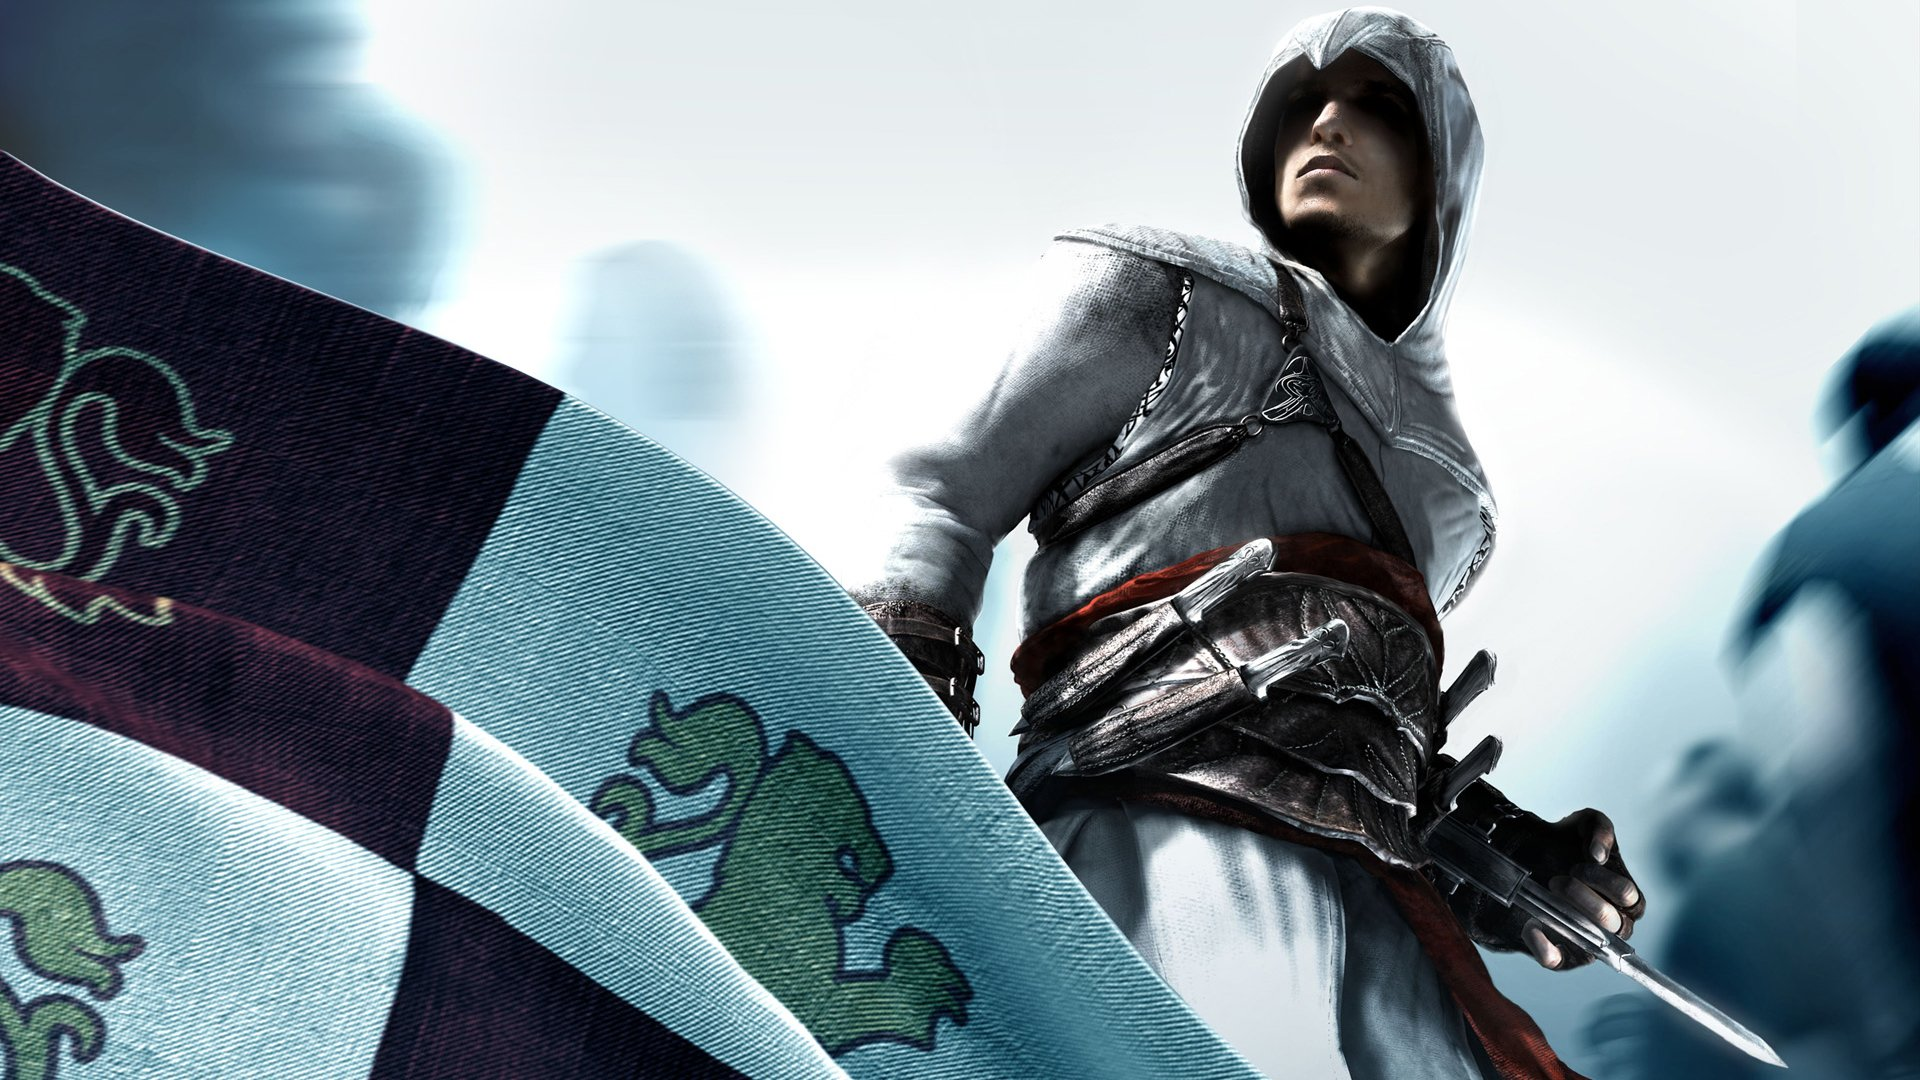 Altair Assassin's Creed